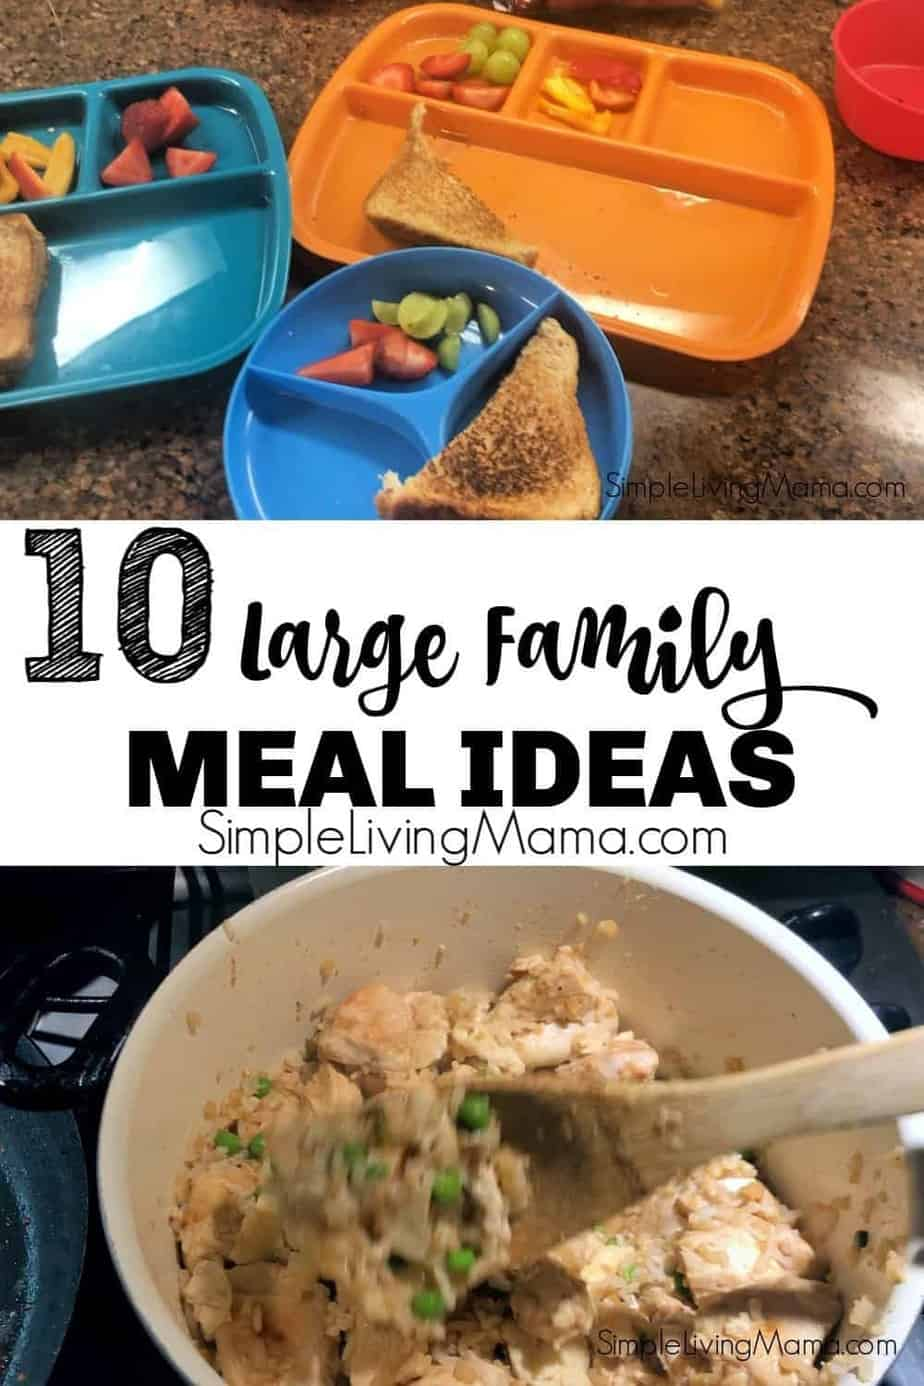 10 large family meal ideas to help with meal planning.